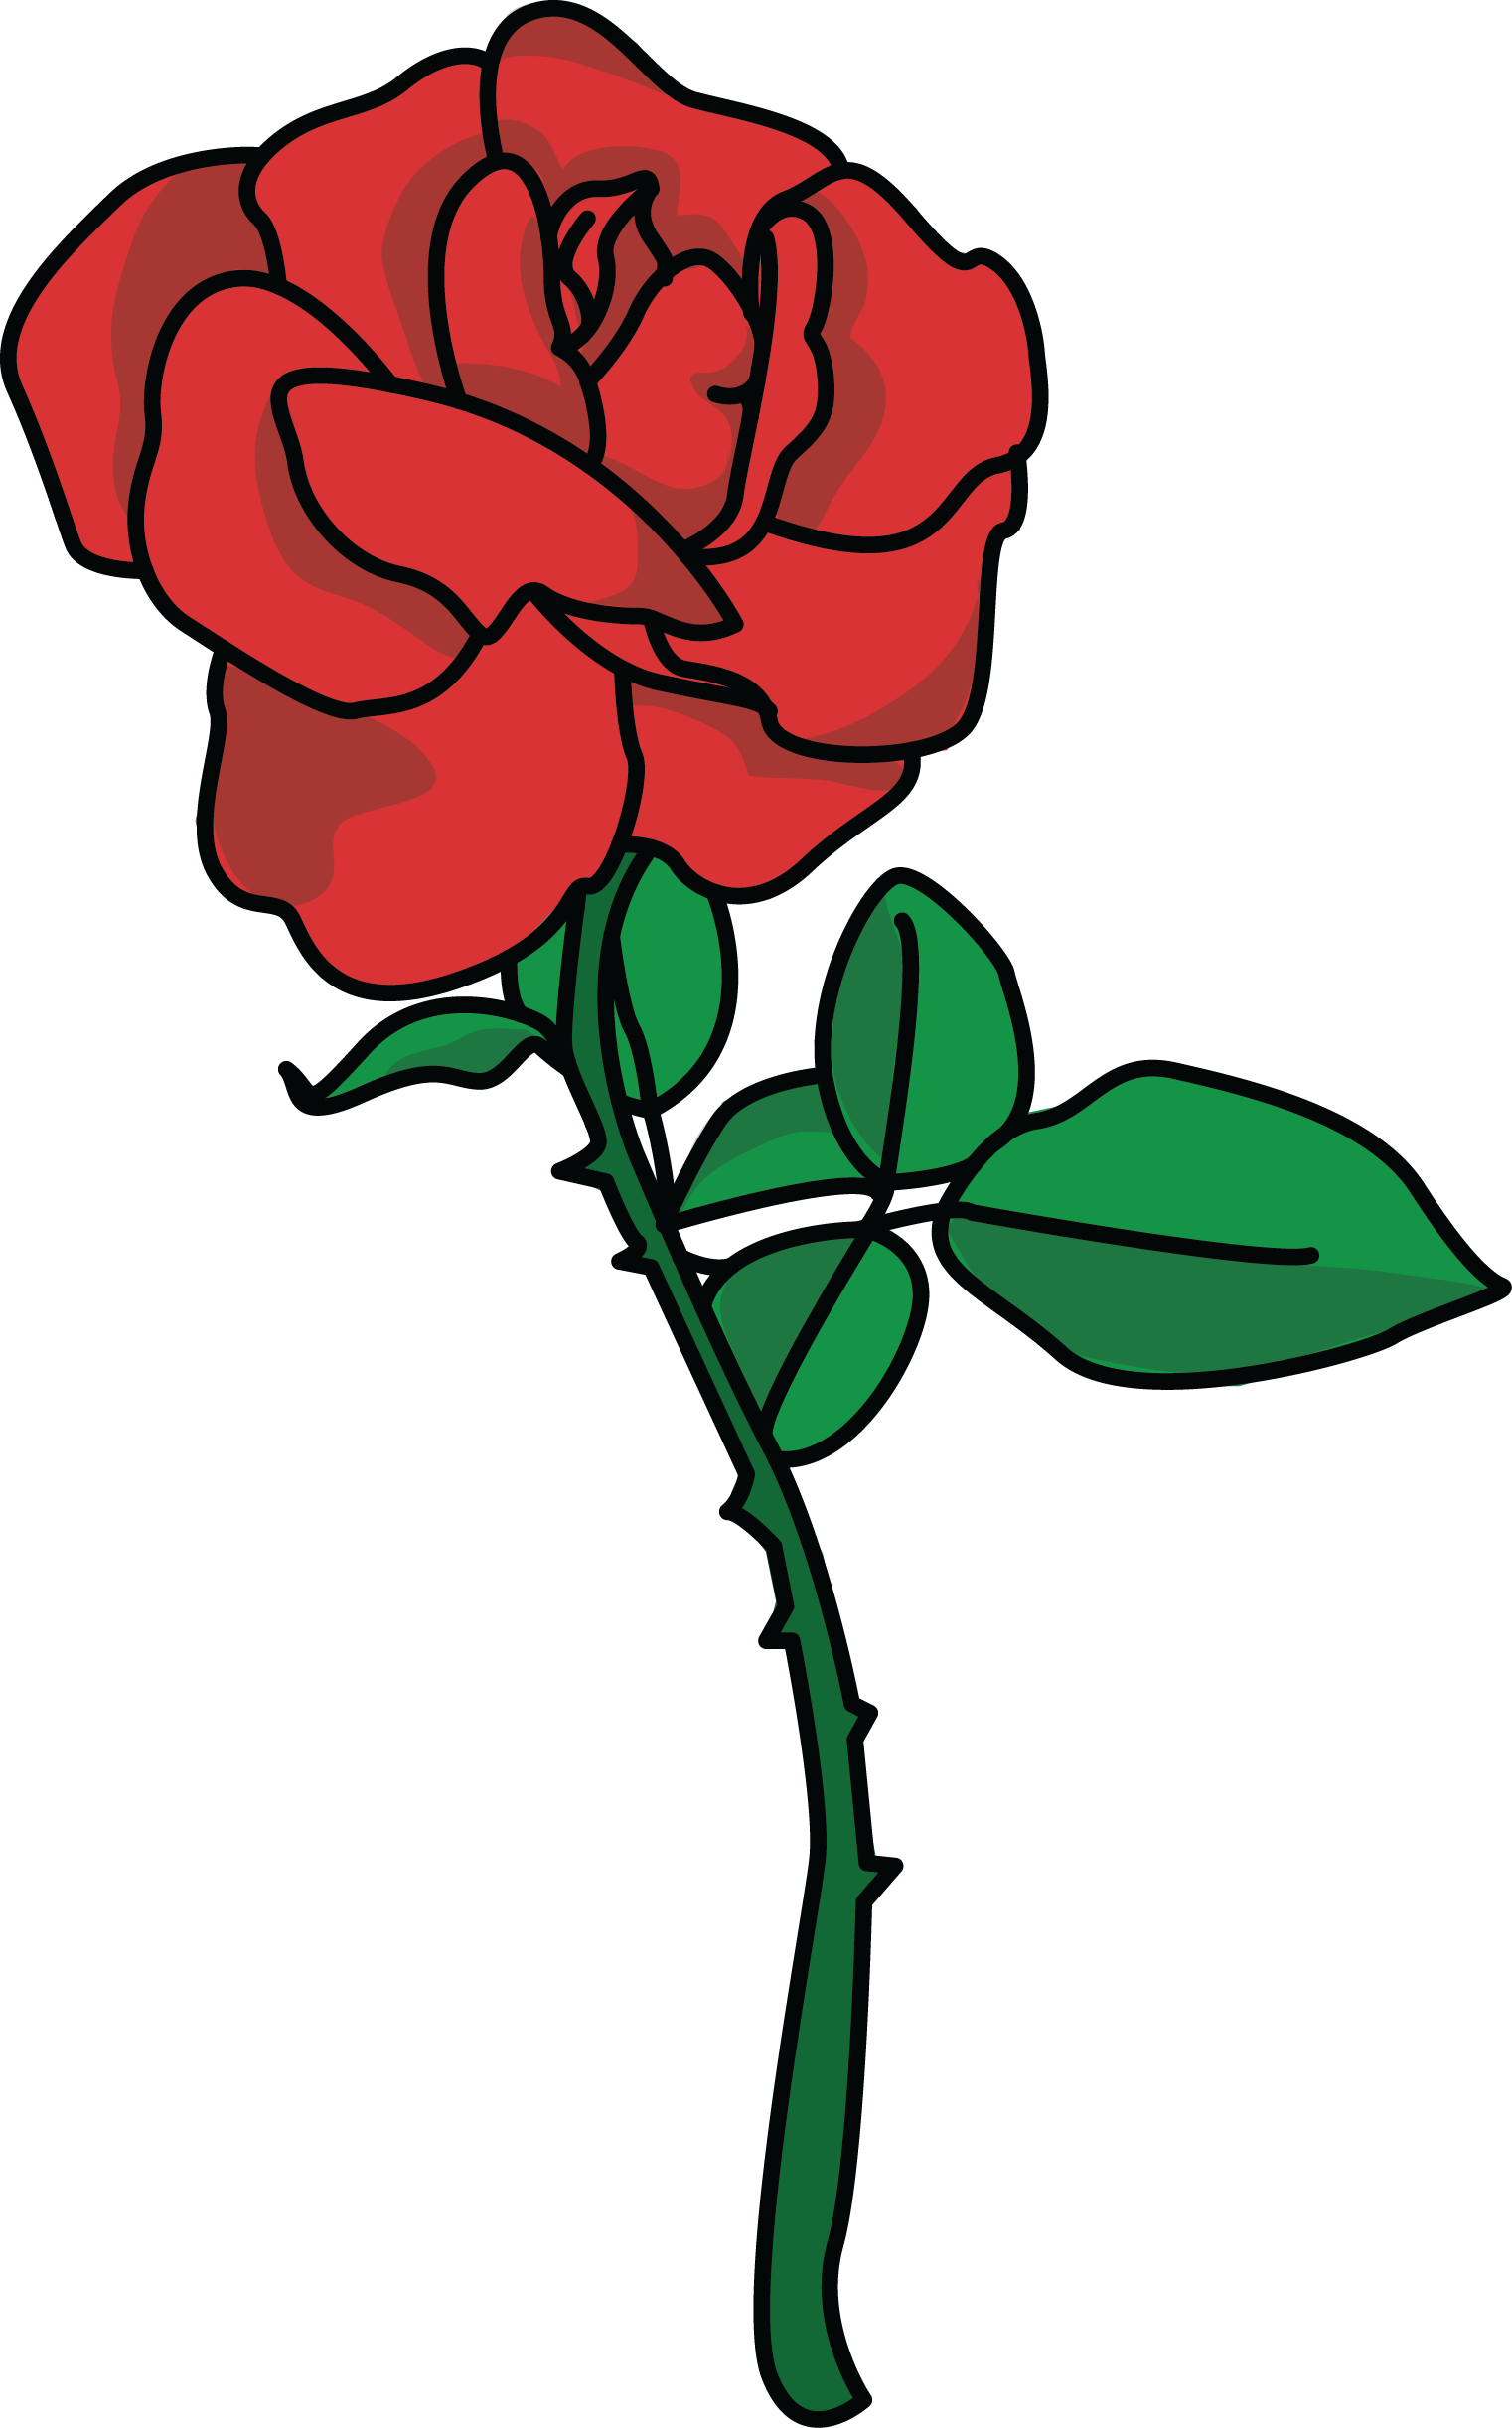 Free Rose Love High Resolution Clip Art | All Free Picture - ClipArt ...